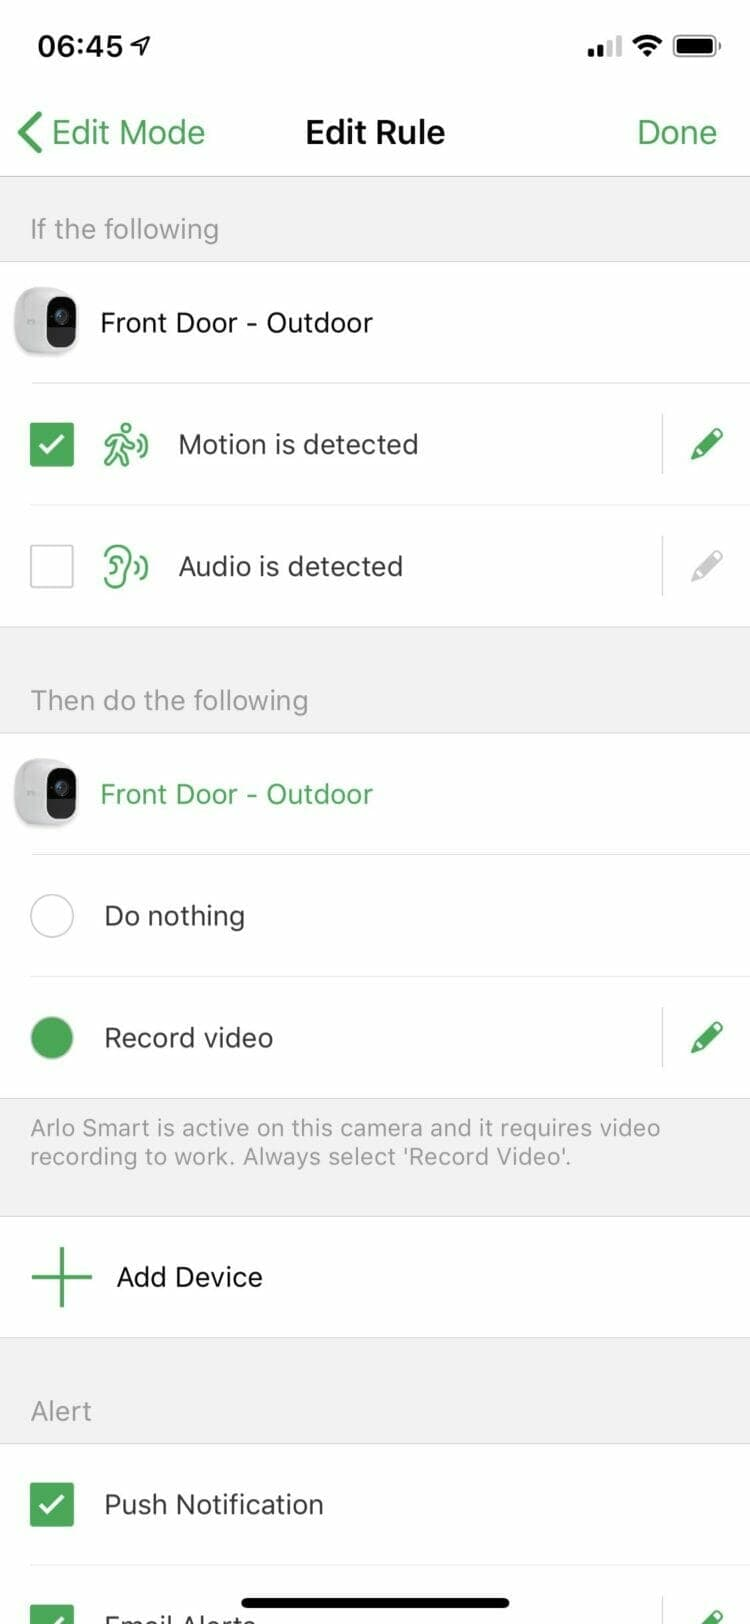 Arlo app - Custom Rules